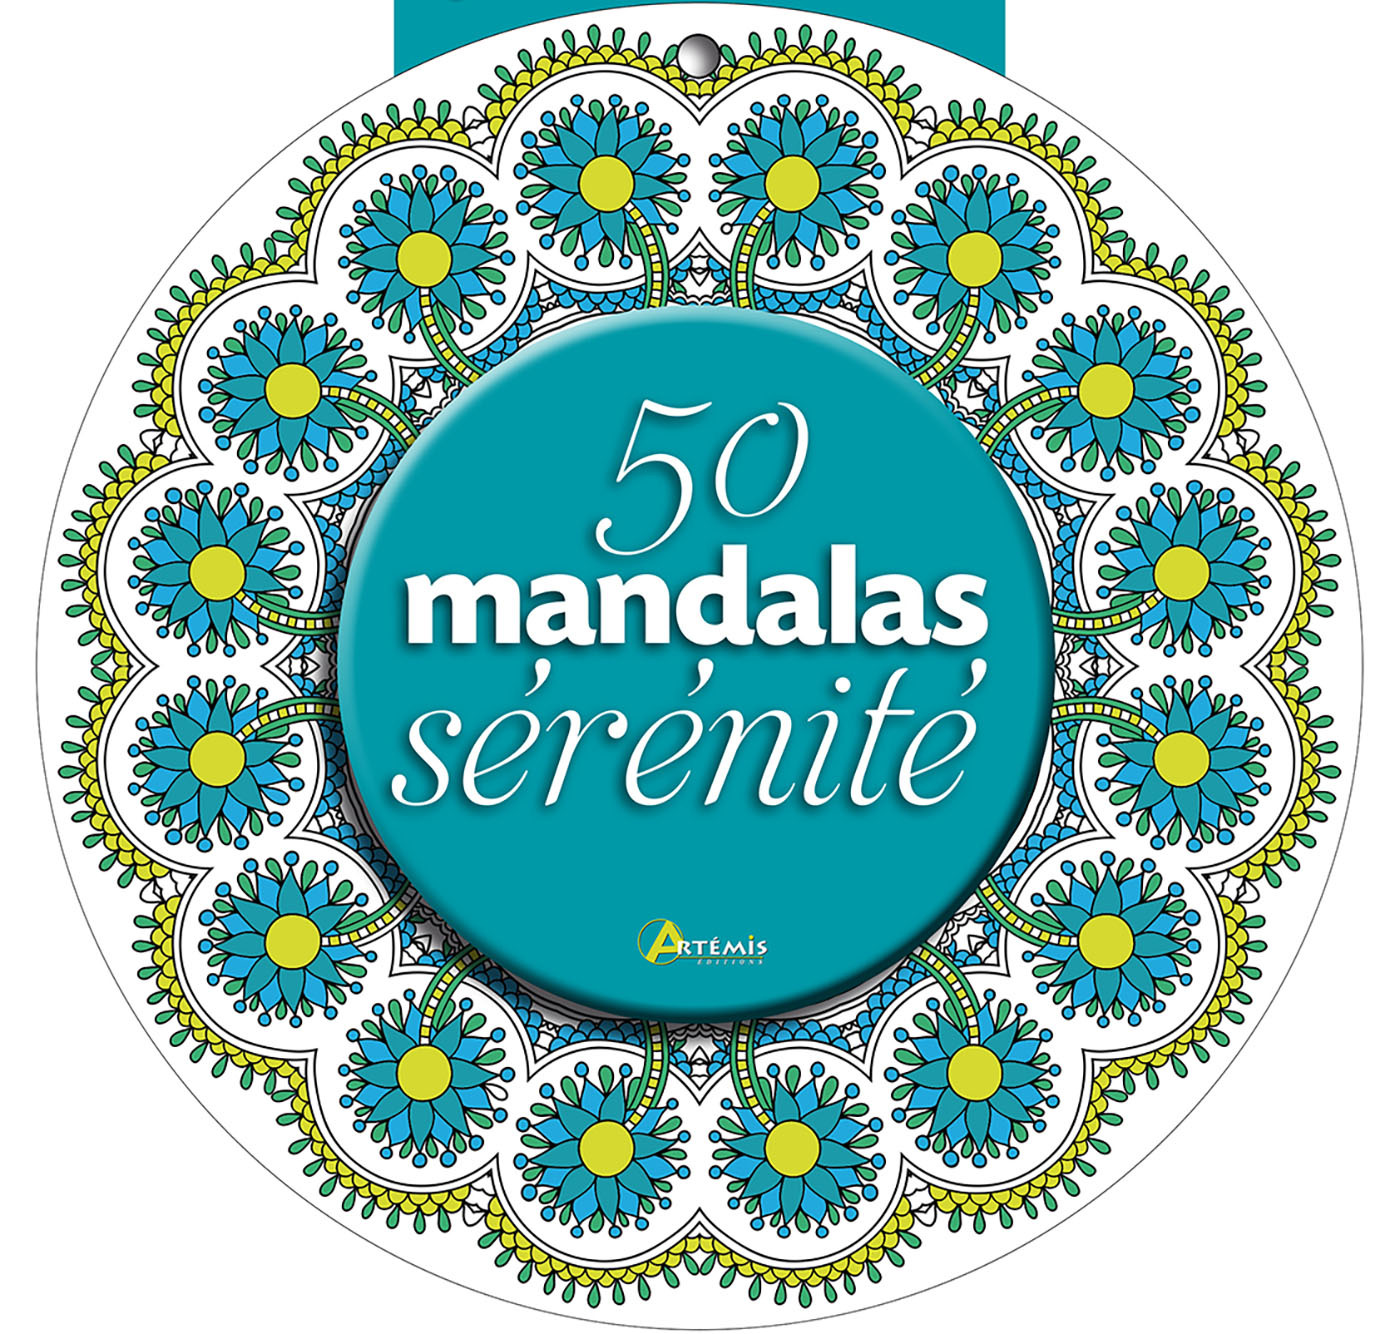 50 MANDALAS SERENITE